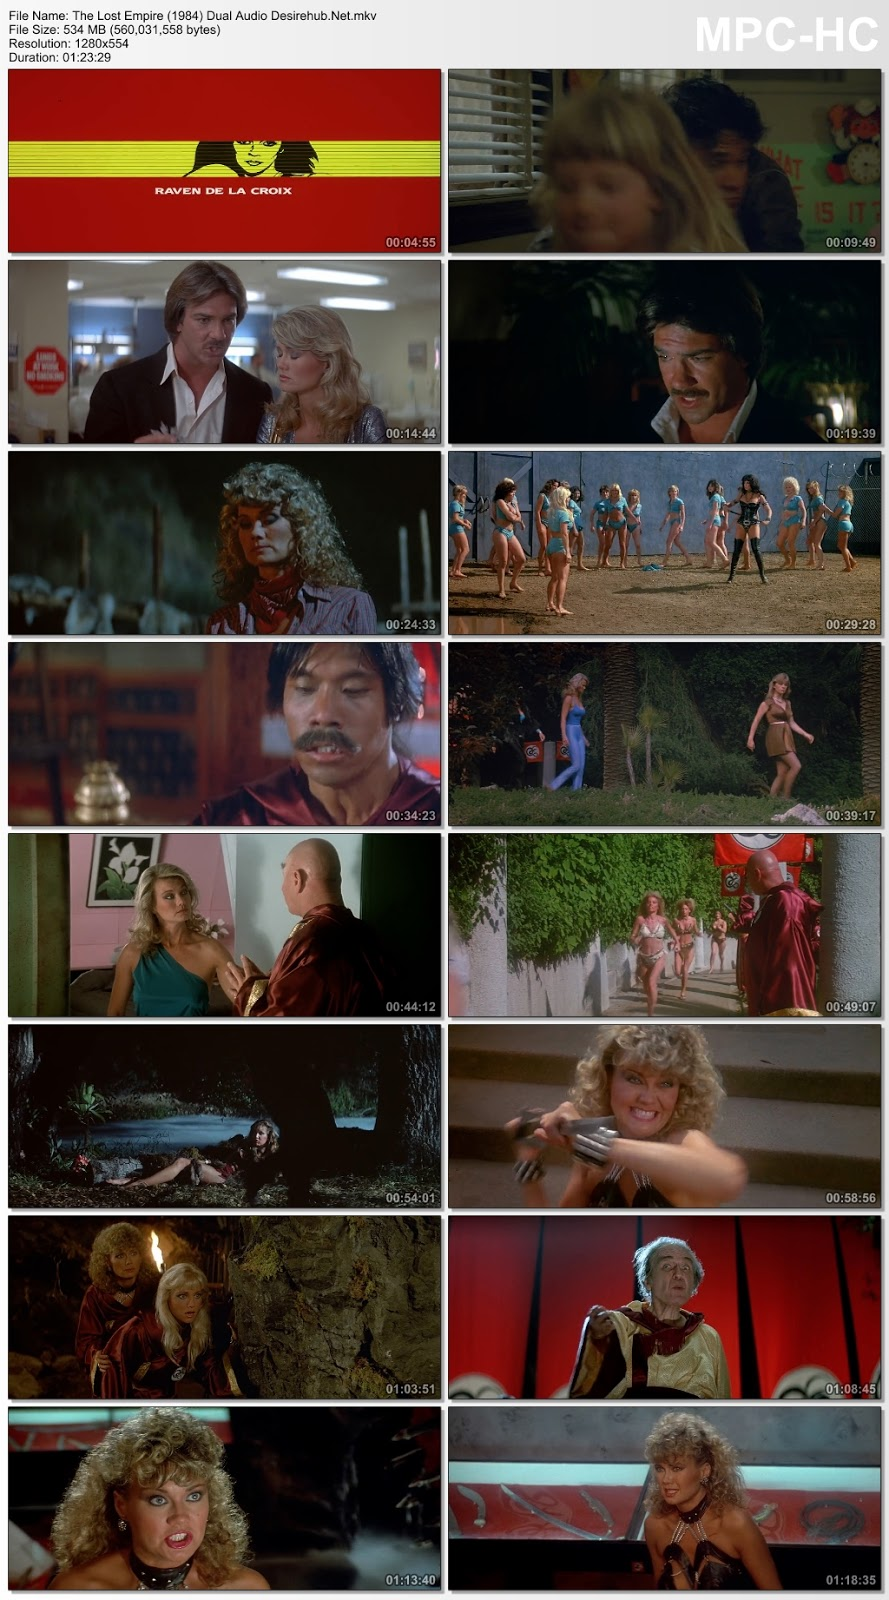 The Lost Empire 1984 Dual Audio Hindi UNRATED 720p BluRay 550MB Desirehub